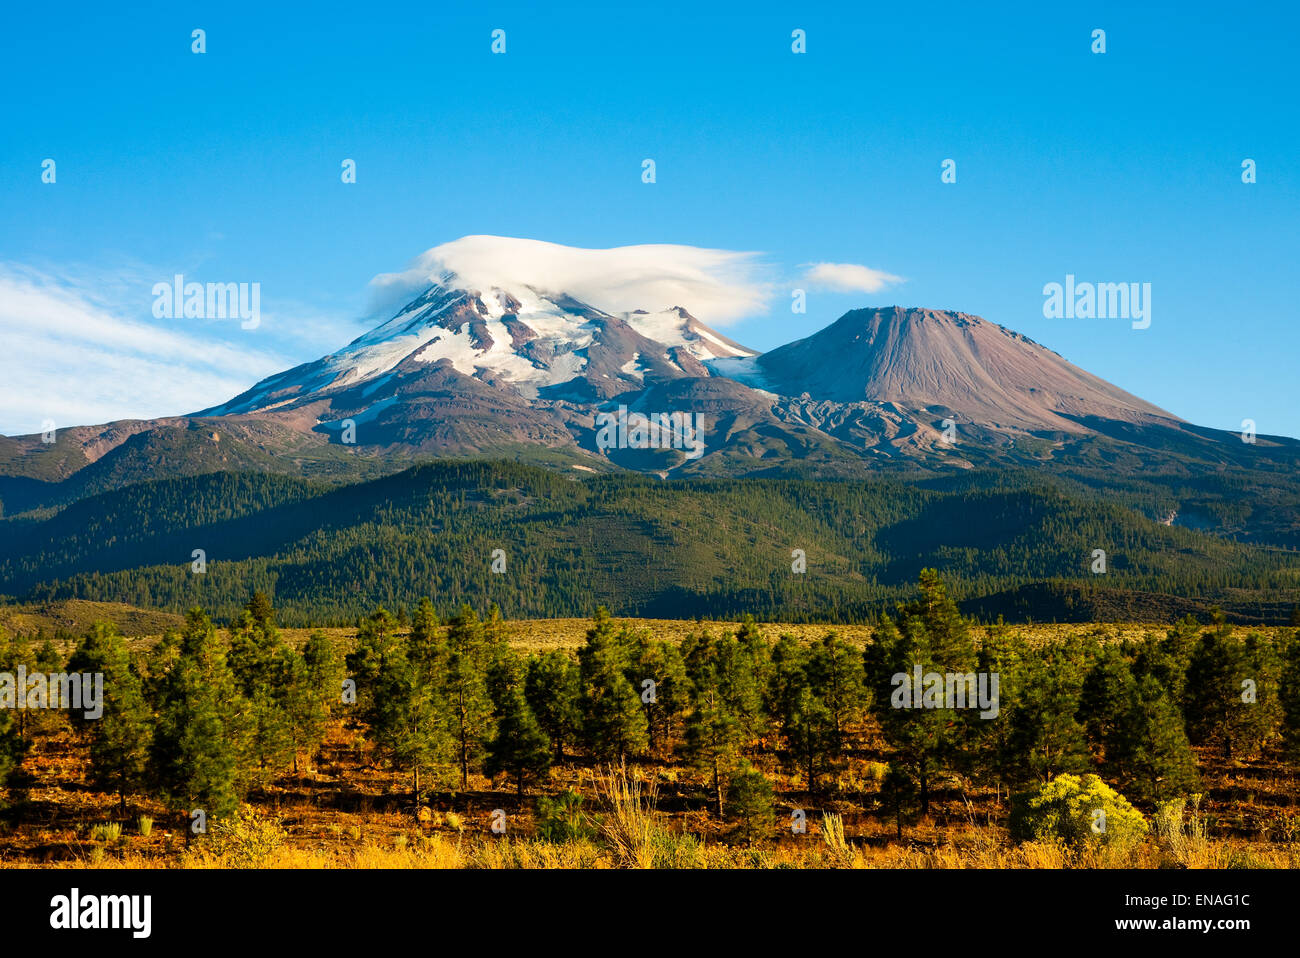 Clouds on top of Mount Shasta, California - Stock Image